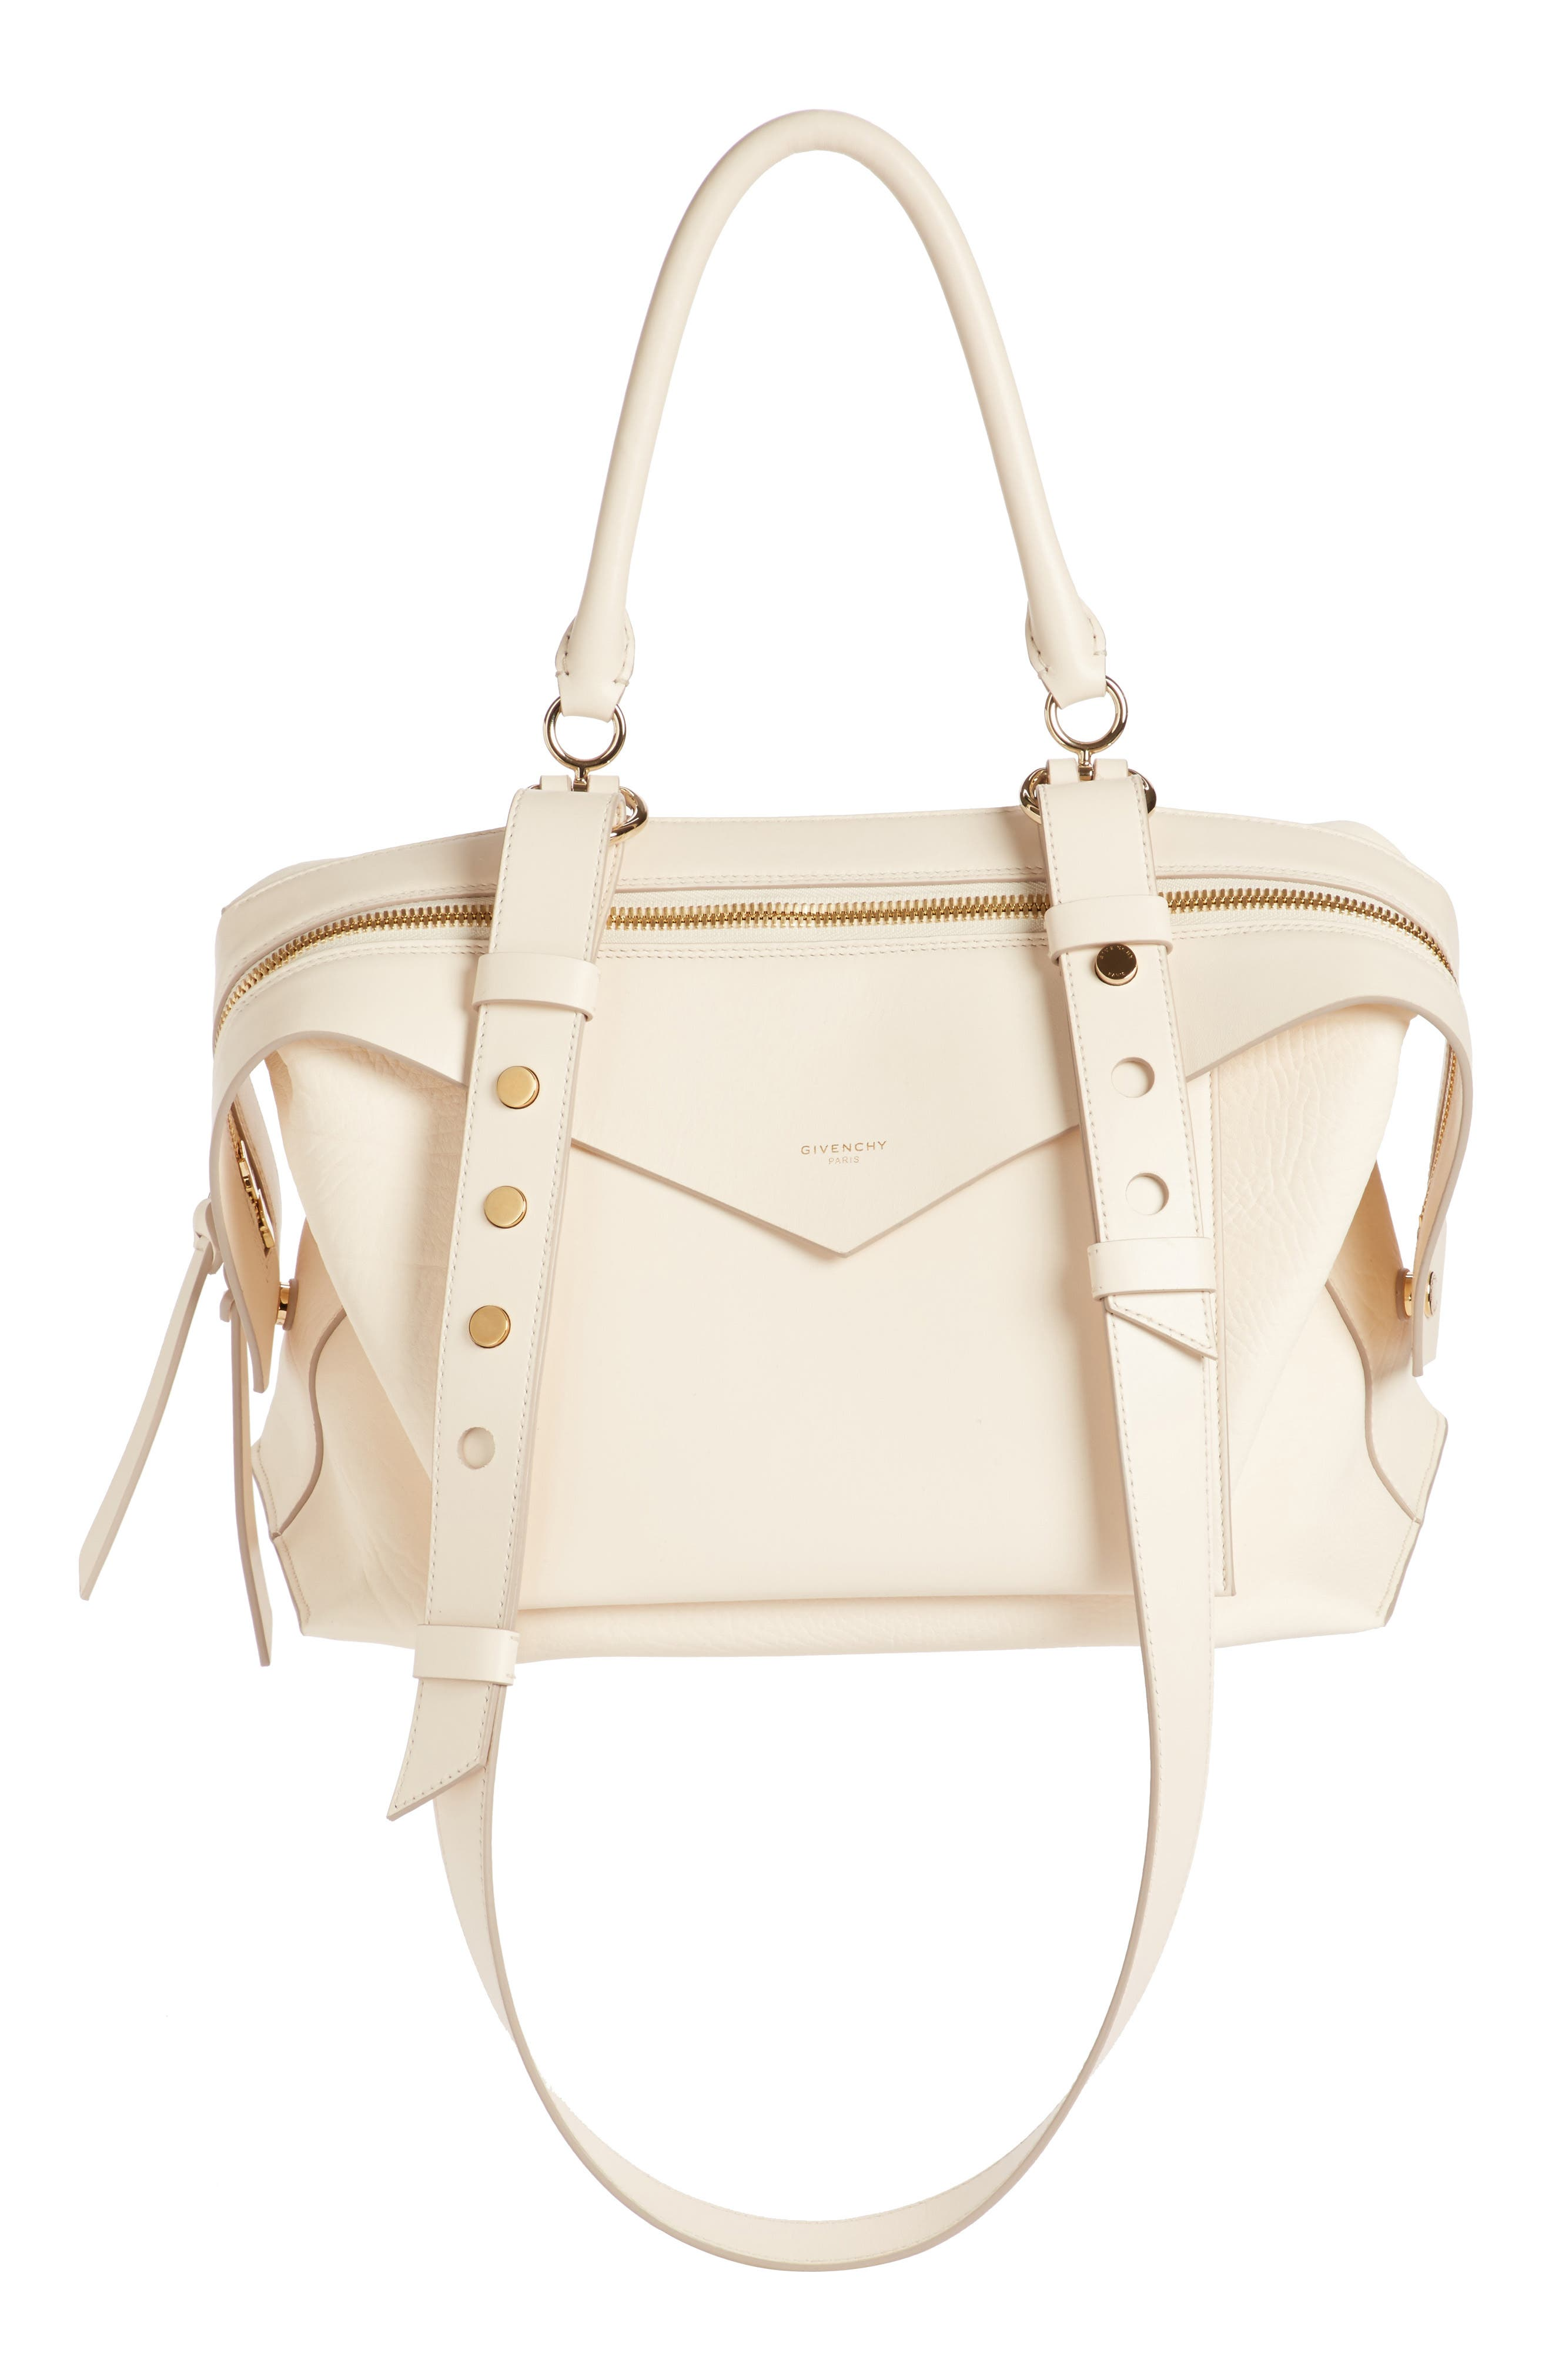 Main Image - Givenchy Medium Sway Leather Satchel